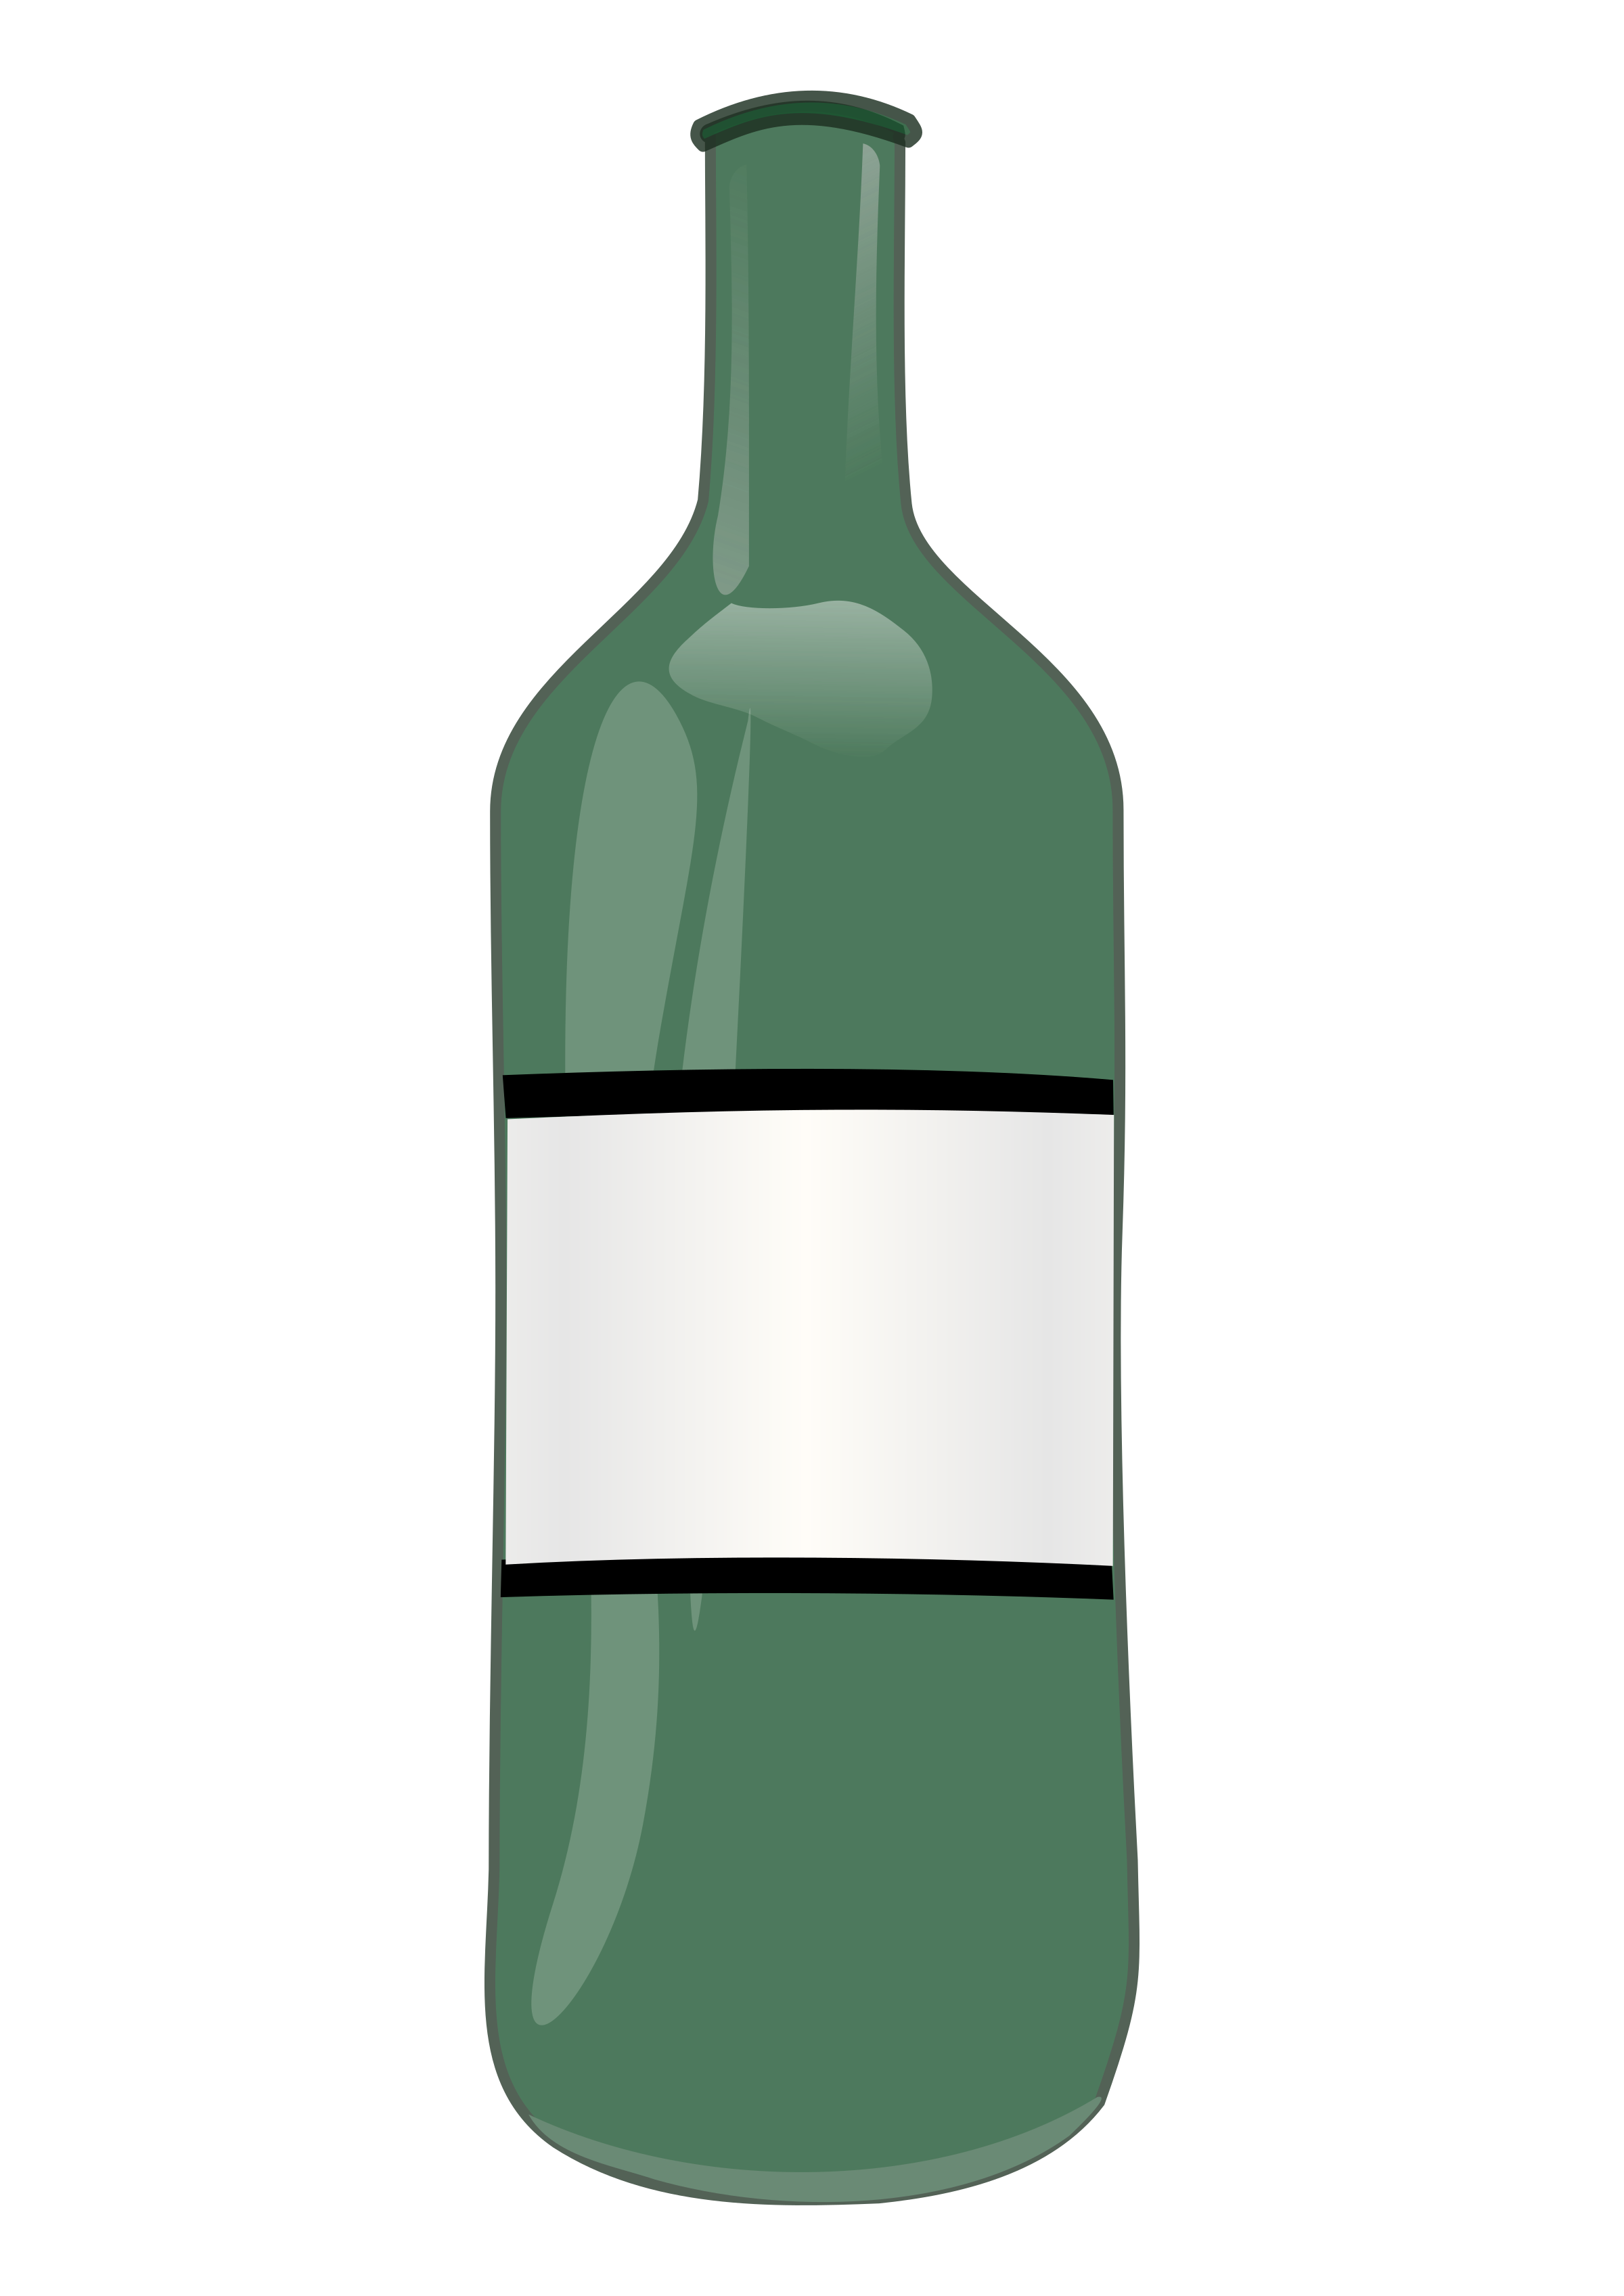 svg library stock Bottle icons png free. Beer clipart beer wine.